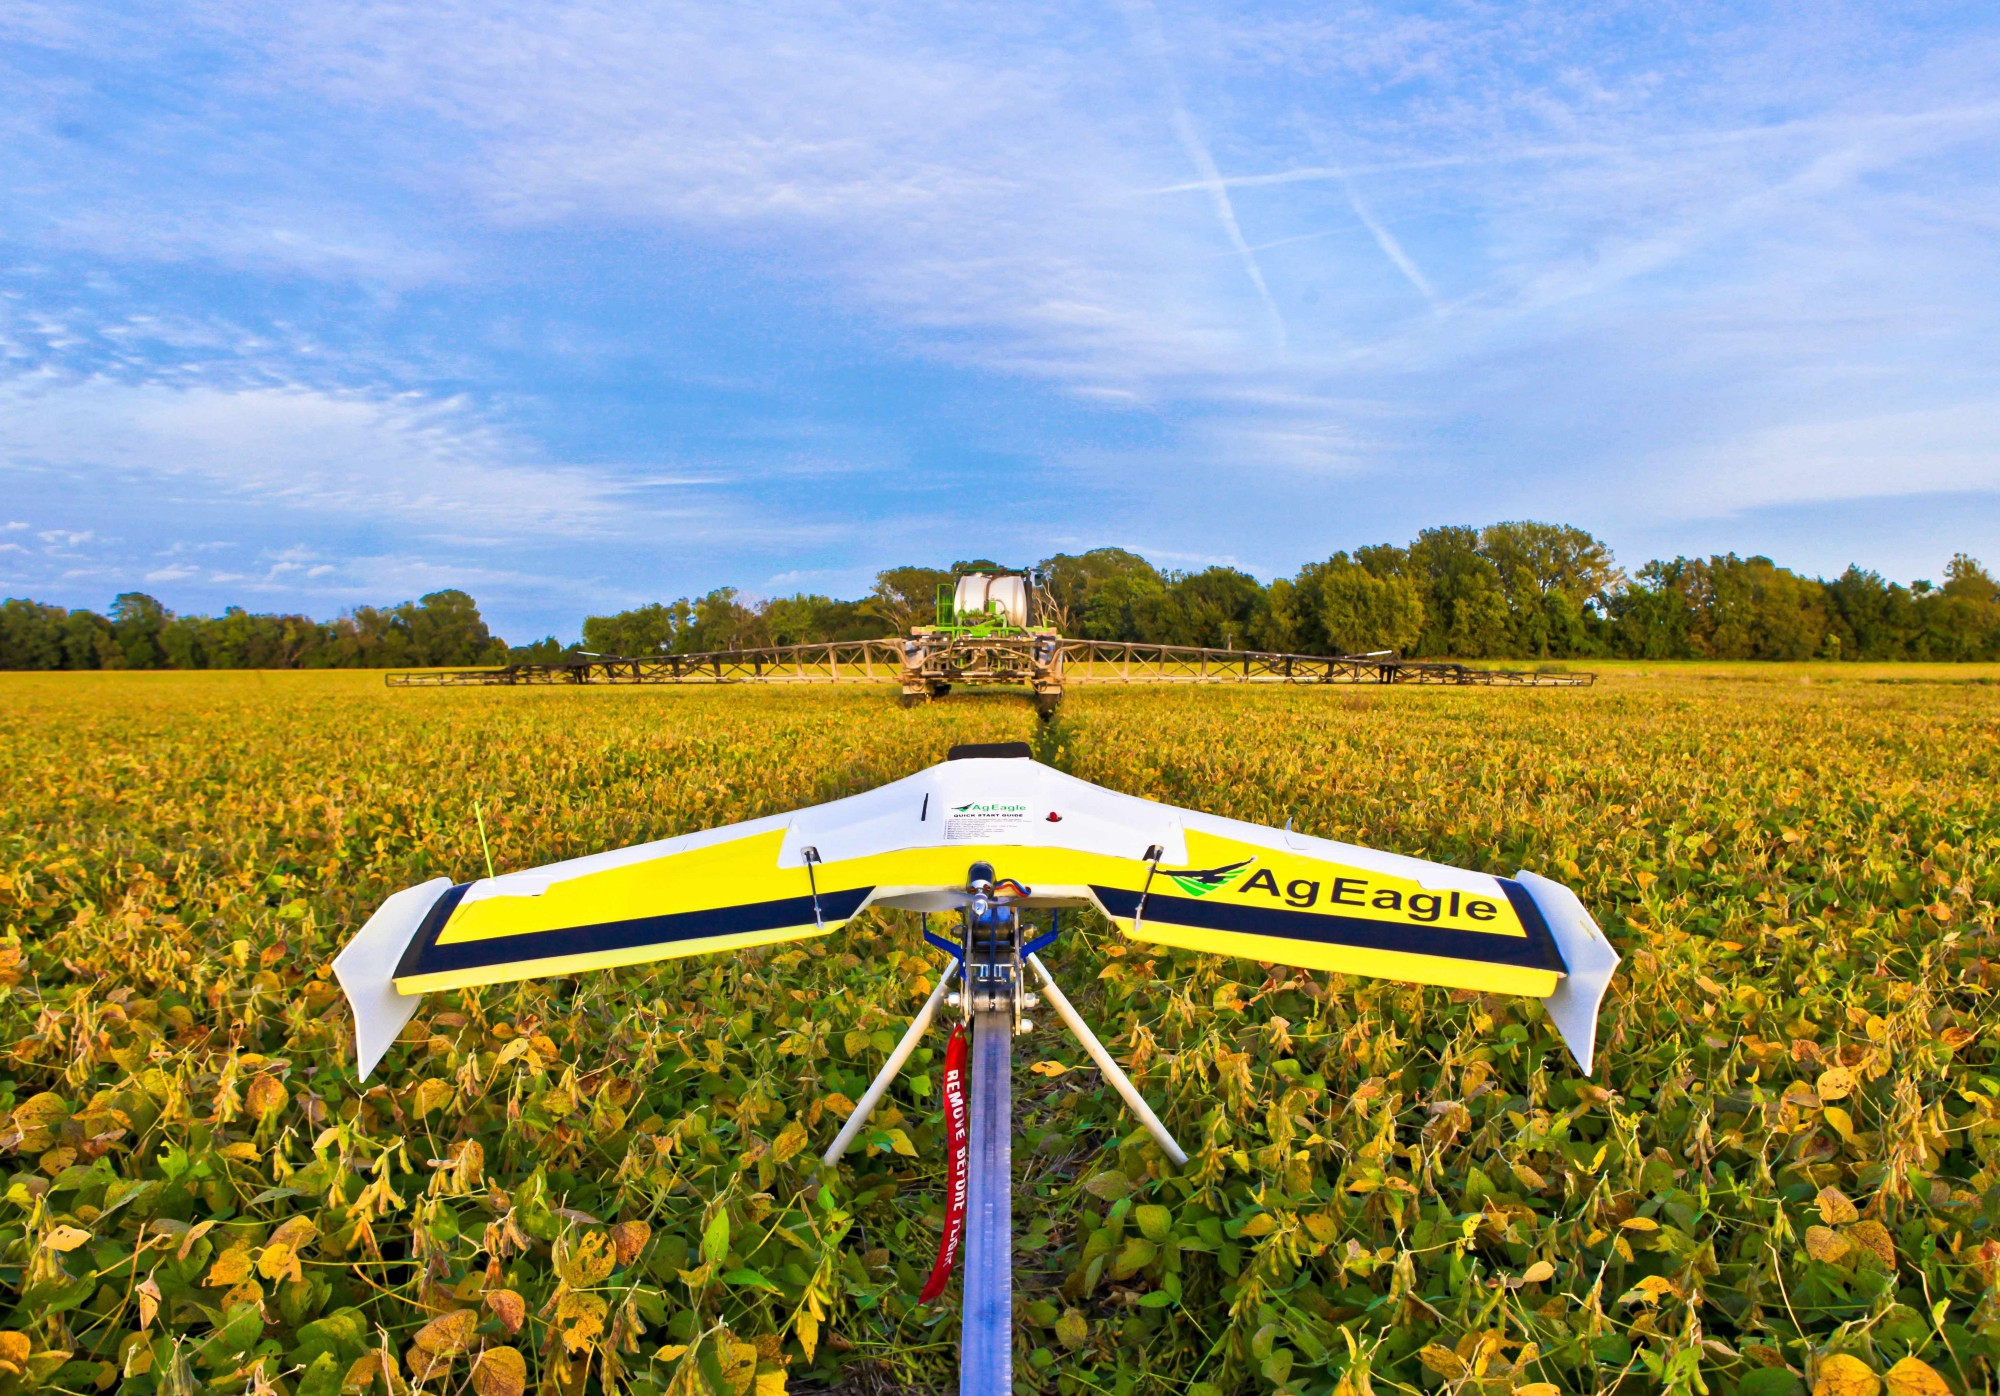 agricultural drones • the drone market is estimated to be an $8 billion market and agriculture is projected to be 80% of the total market • the agriculture drone market.